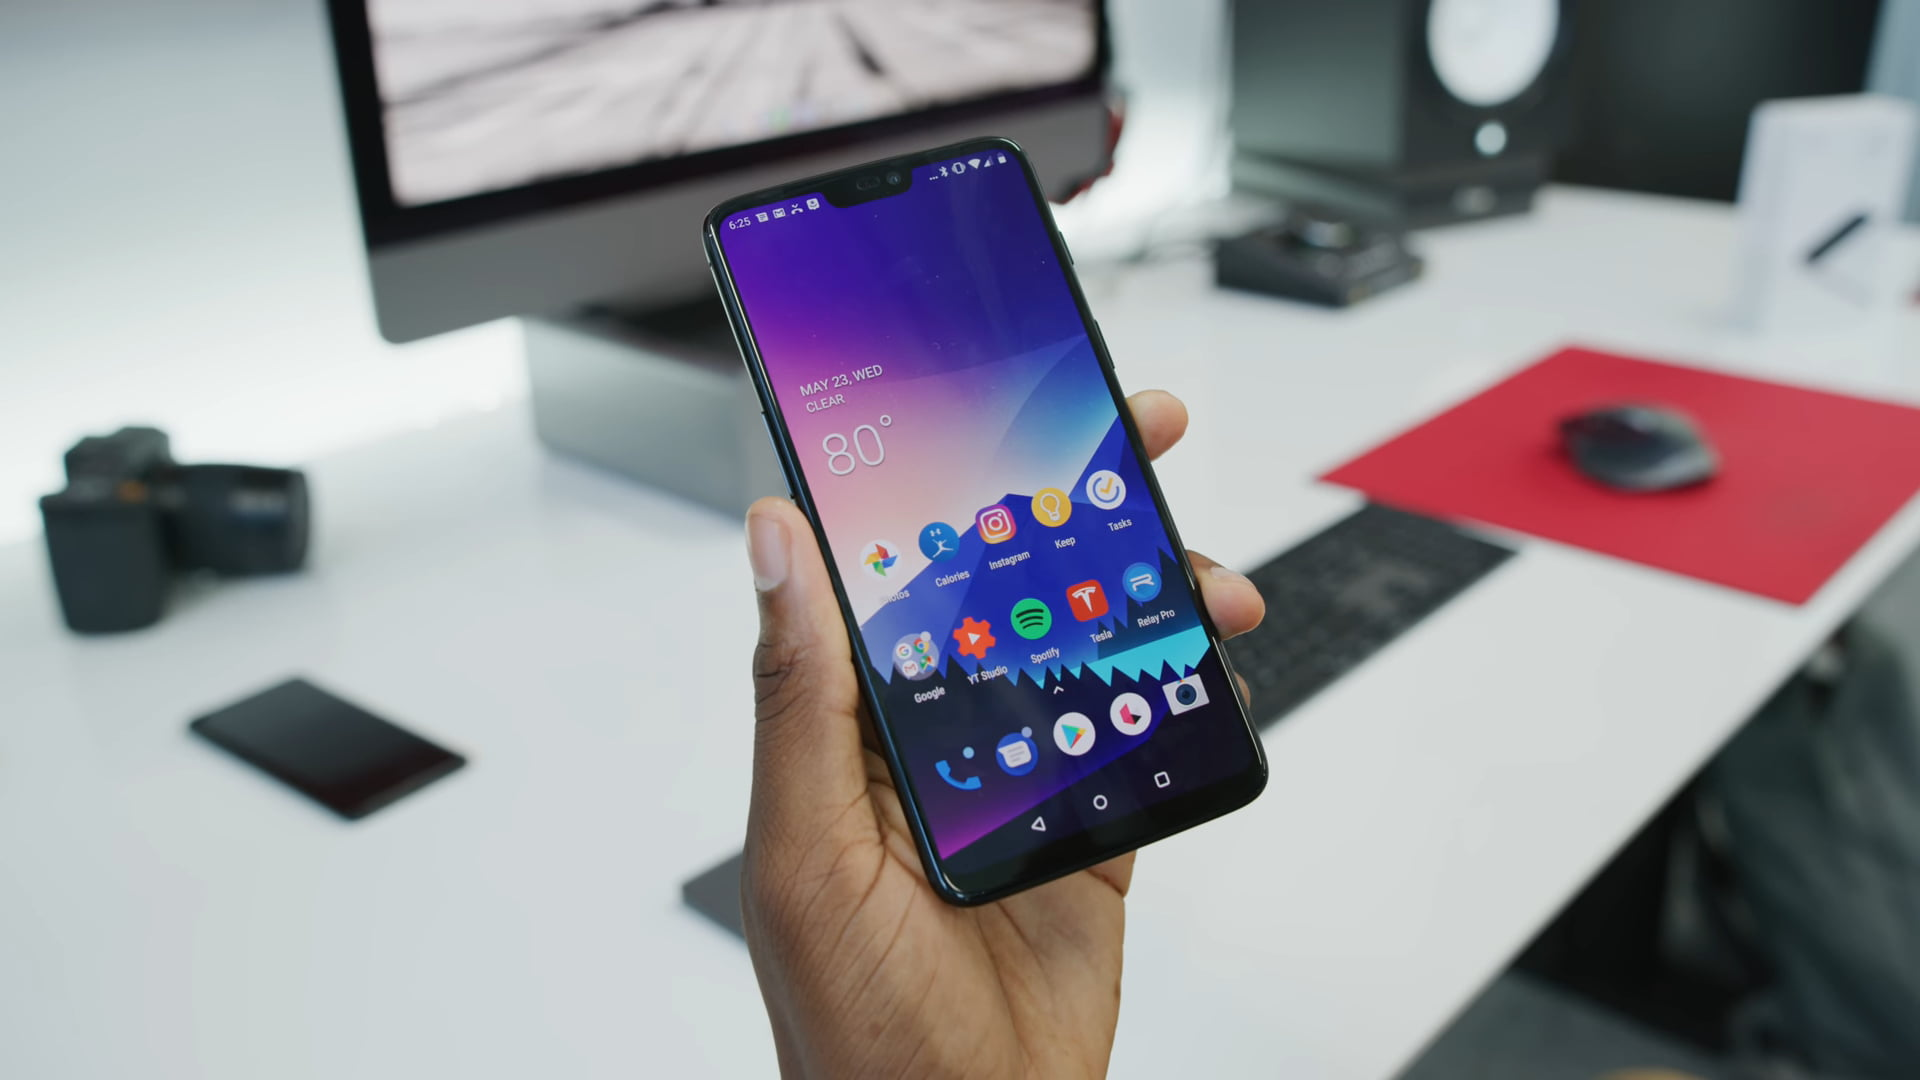 OnePlus 6 gets a new Android Pie software update